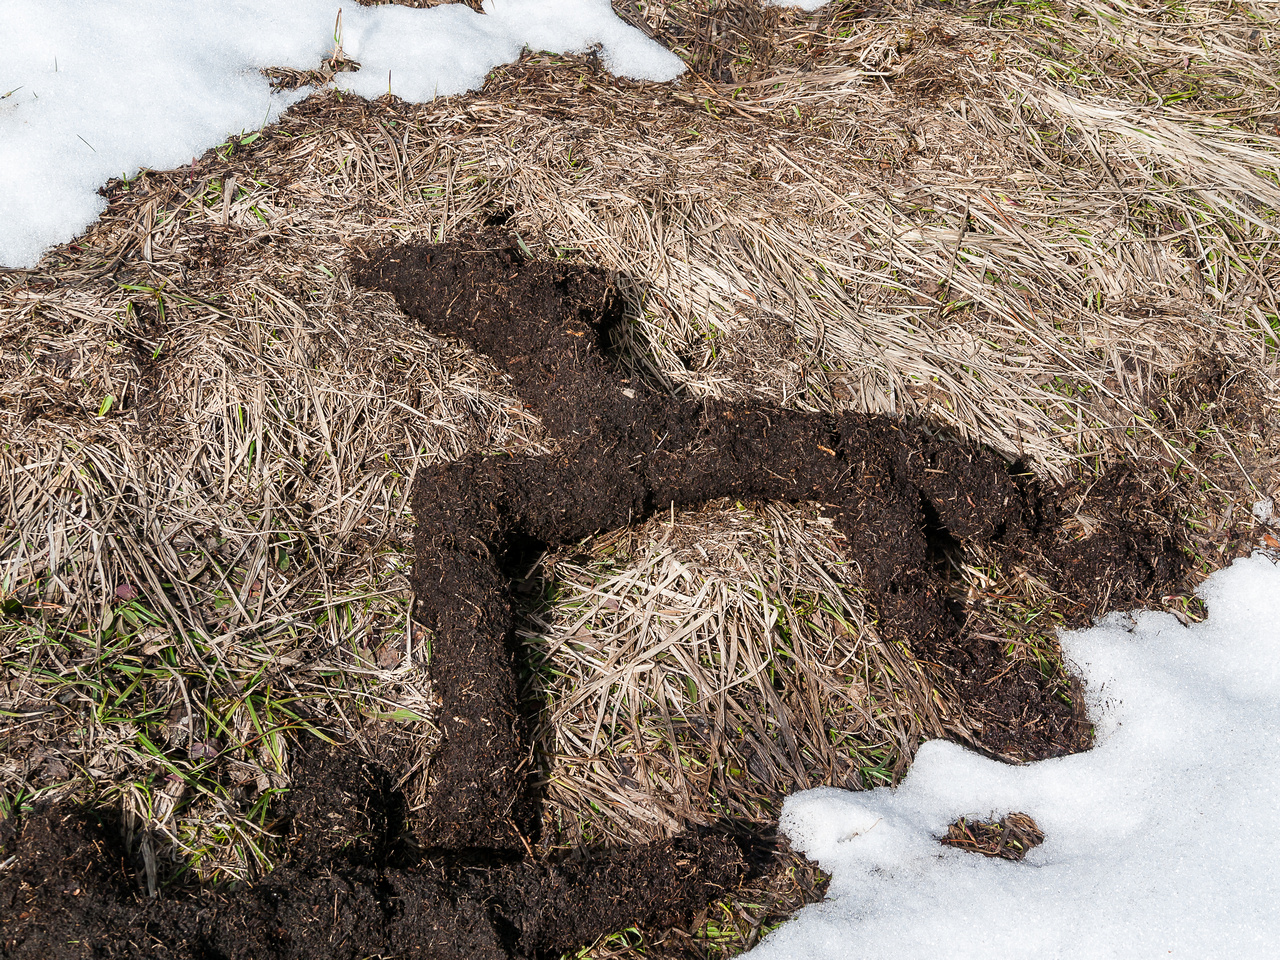 Interesting shapes with the thawing ground.